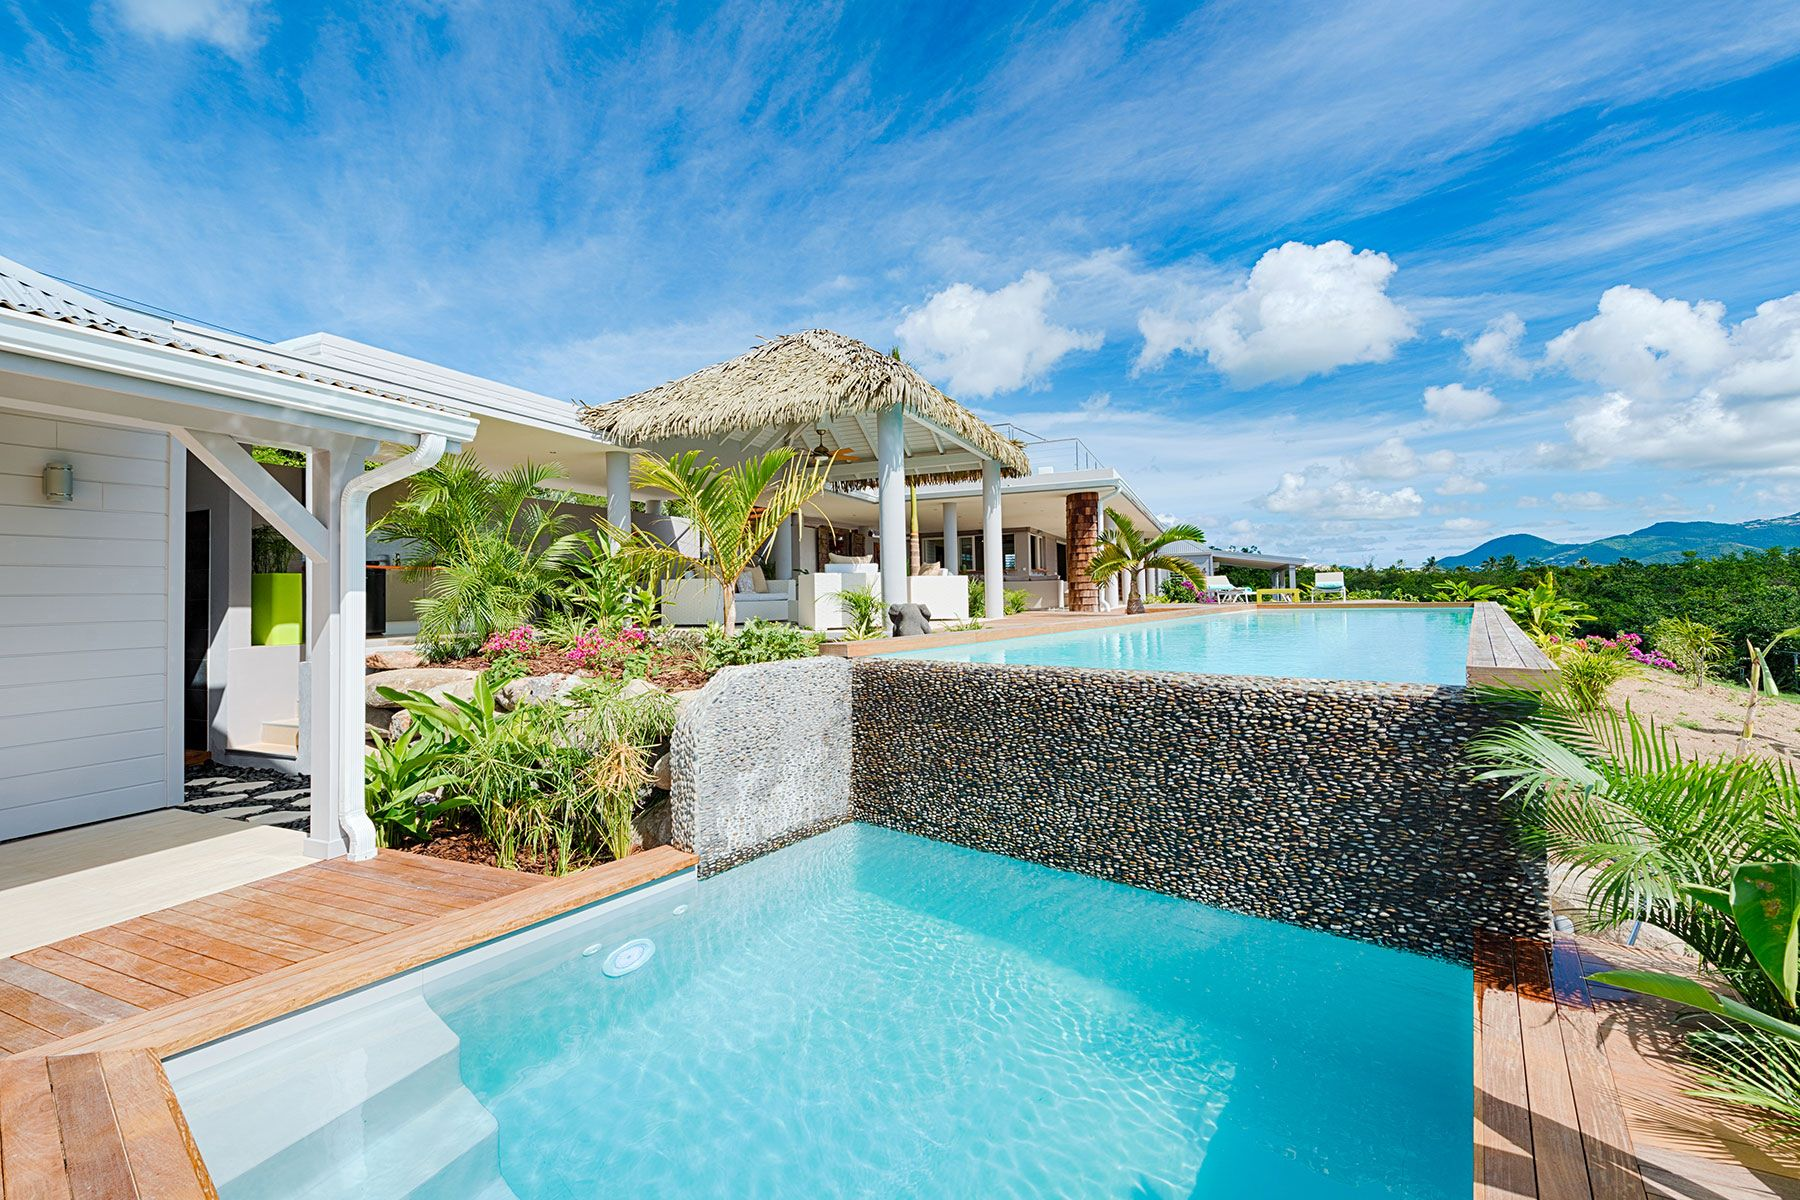 Single Family Home for Sale at Caribbean Blue Caribbean Blue Terres Basses, Cities In Saint Martin 97150 St. Martin